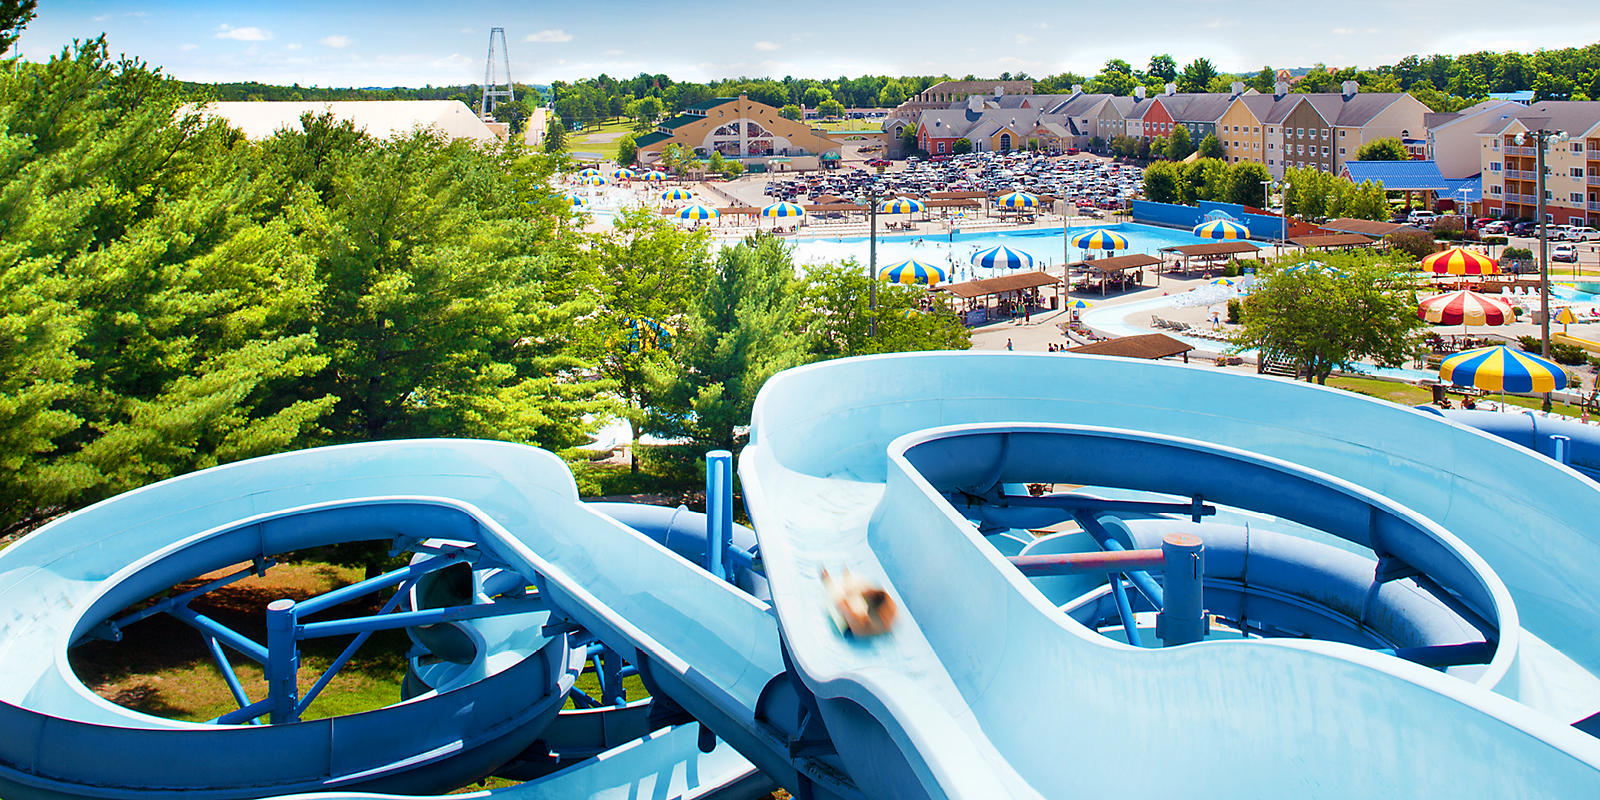 Mt. Olympus Water Park water slides view of park